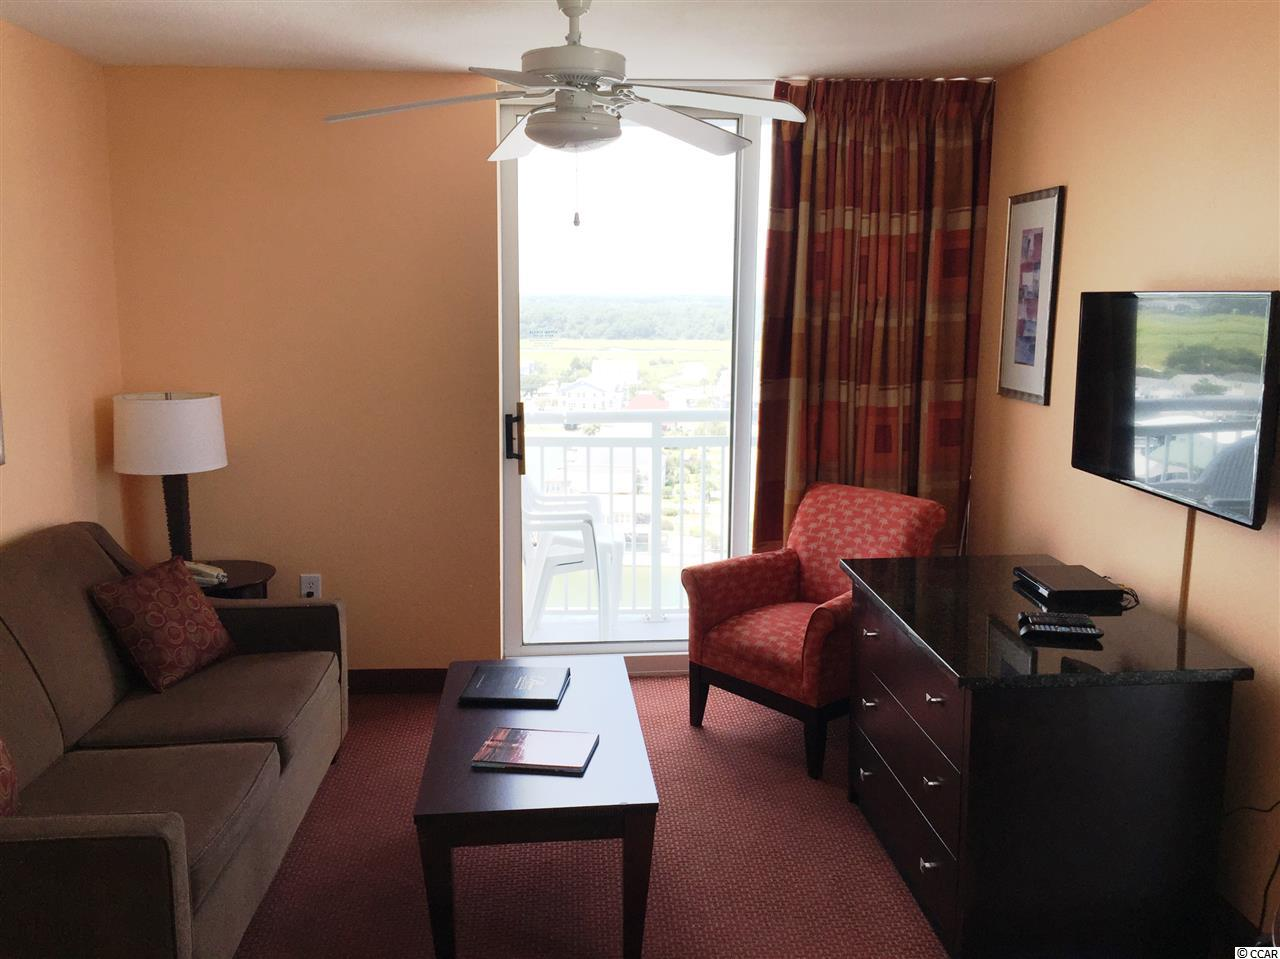 1 bedroom  Prince Resort - Phase I - Cherry condo for sale